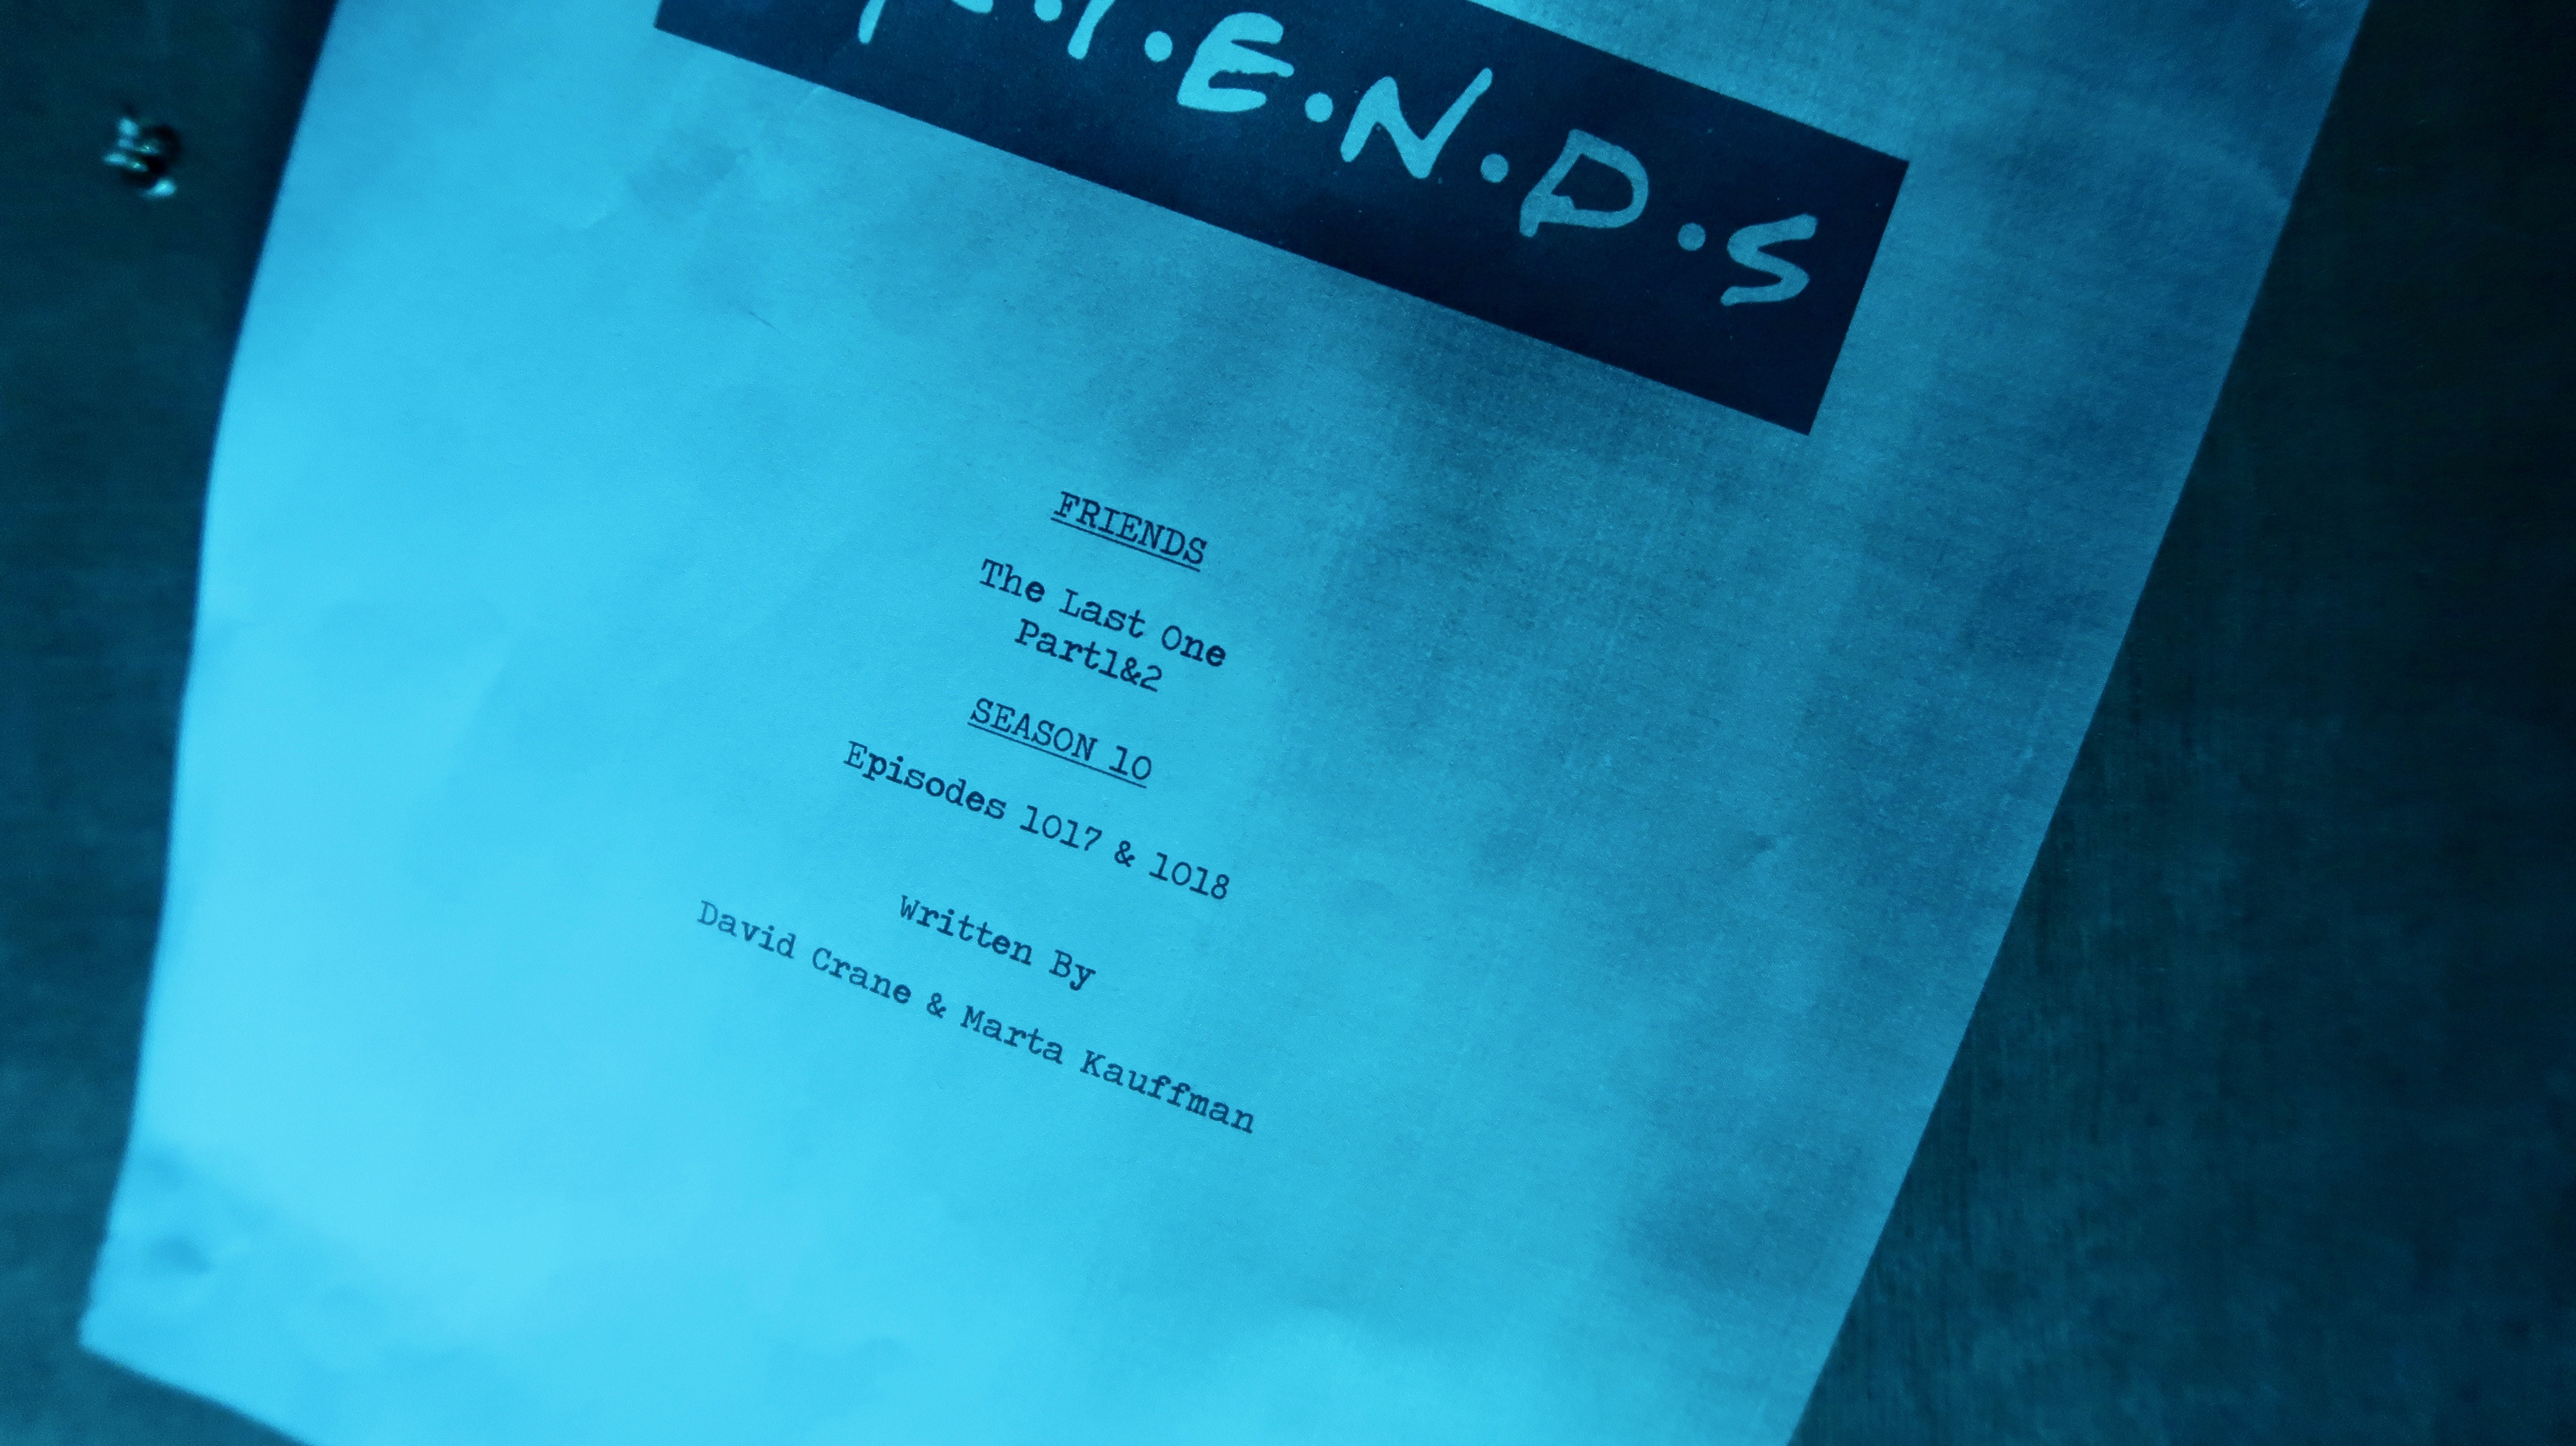 The one where Friends Fest came to Newcastle 2